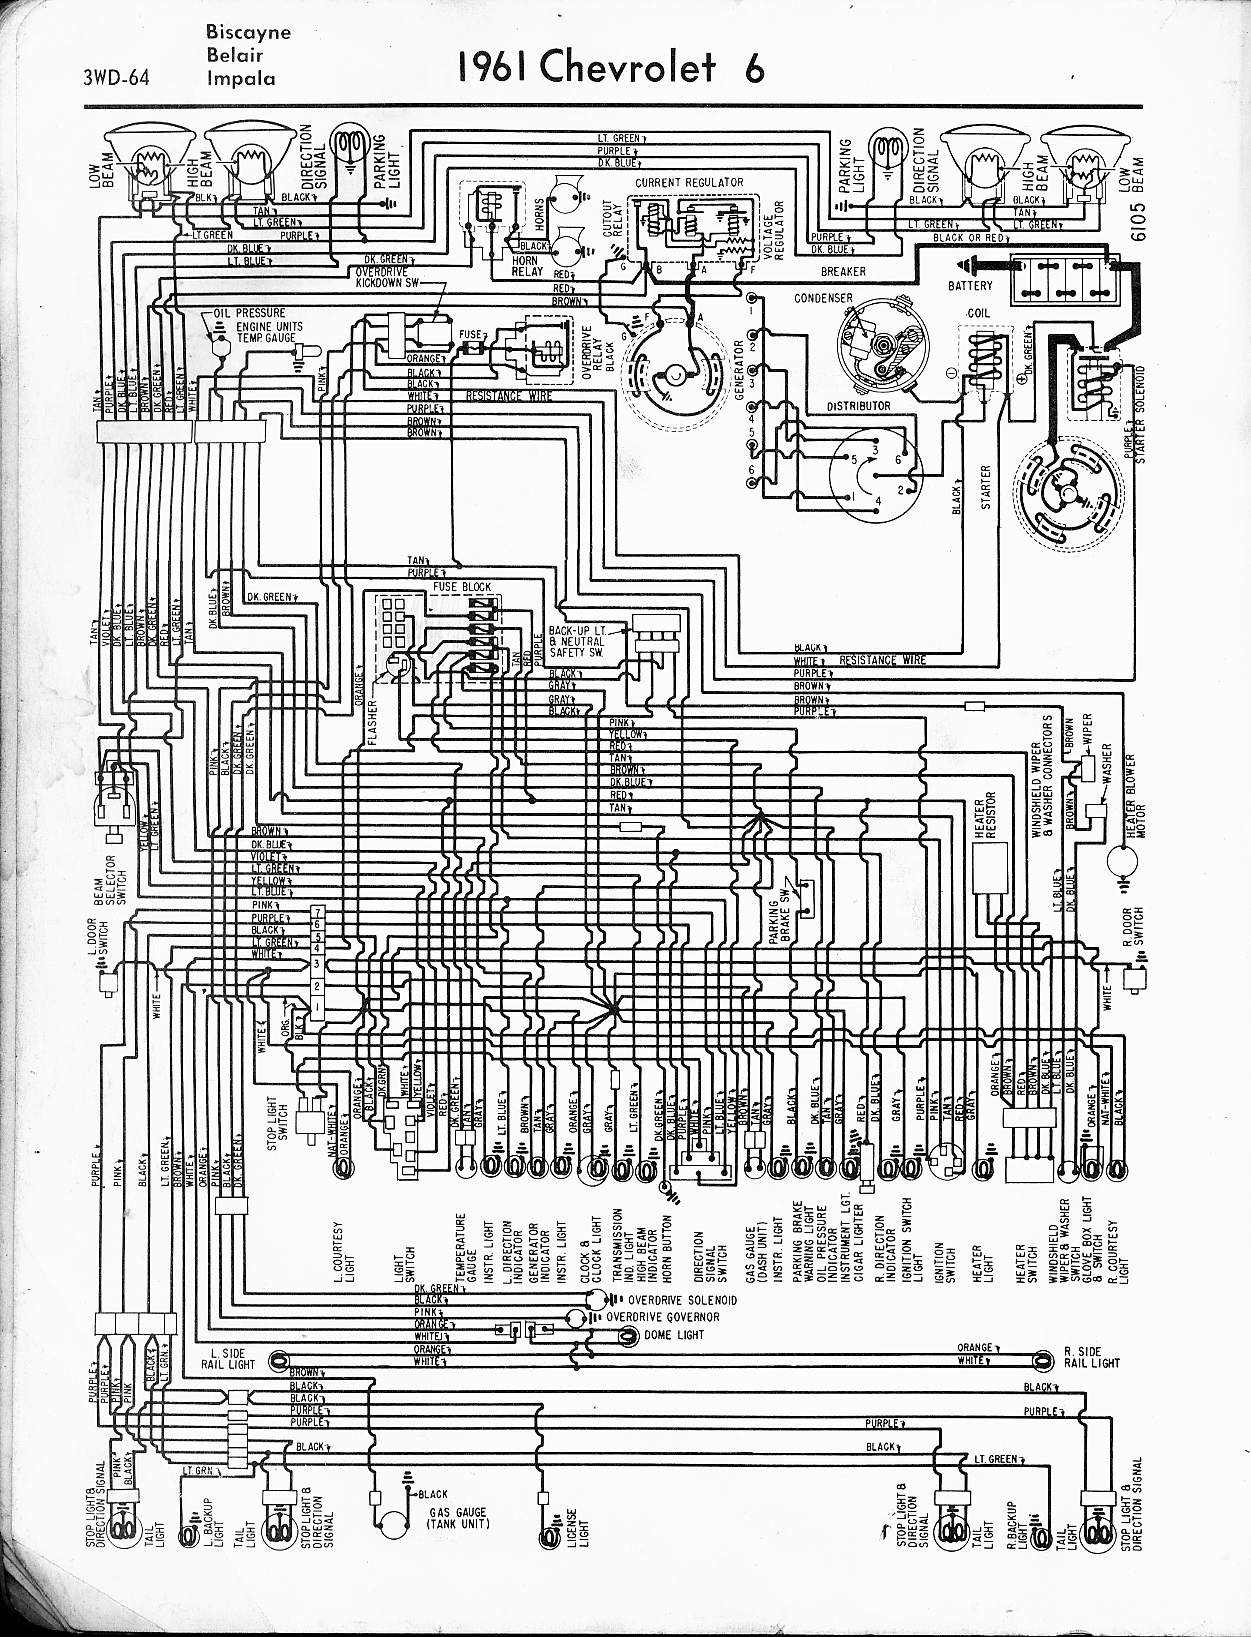 1965 chevy pickup wiring harness wiring diagram fascinating  1958 chevy truck wiring diagram #15